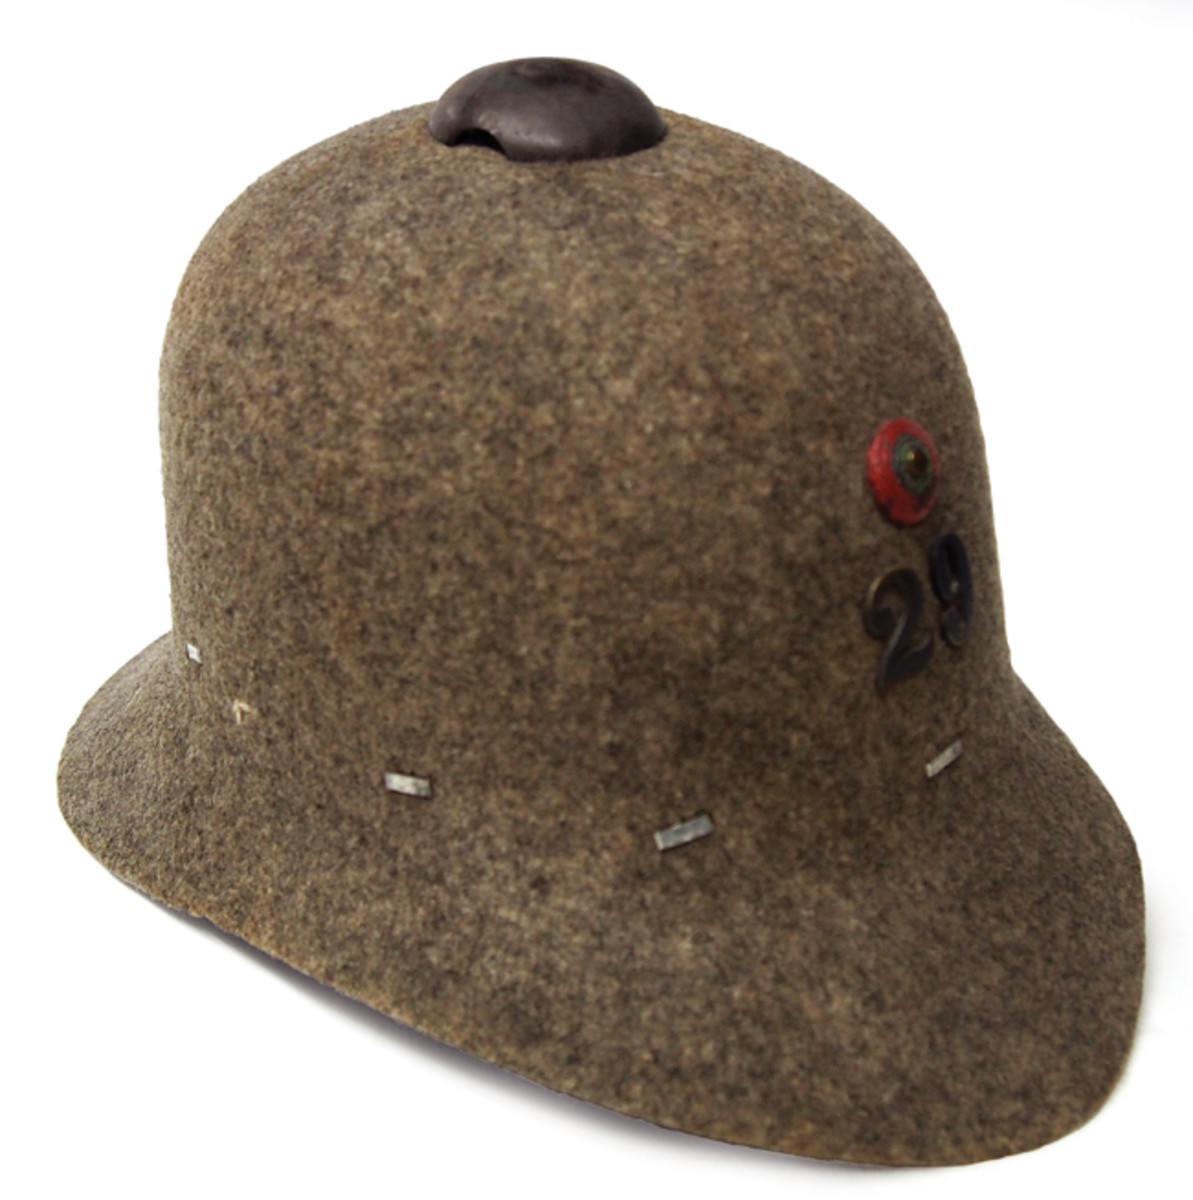 A Portuguese Model 1913 felt helmet – these were originally designated for use by the Metropolitan Army of Portugal, but were also used by Portugal's colonial forces in Africa in World War I.